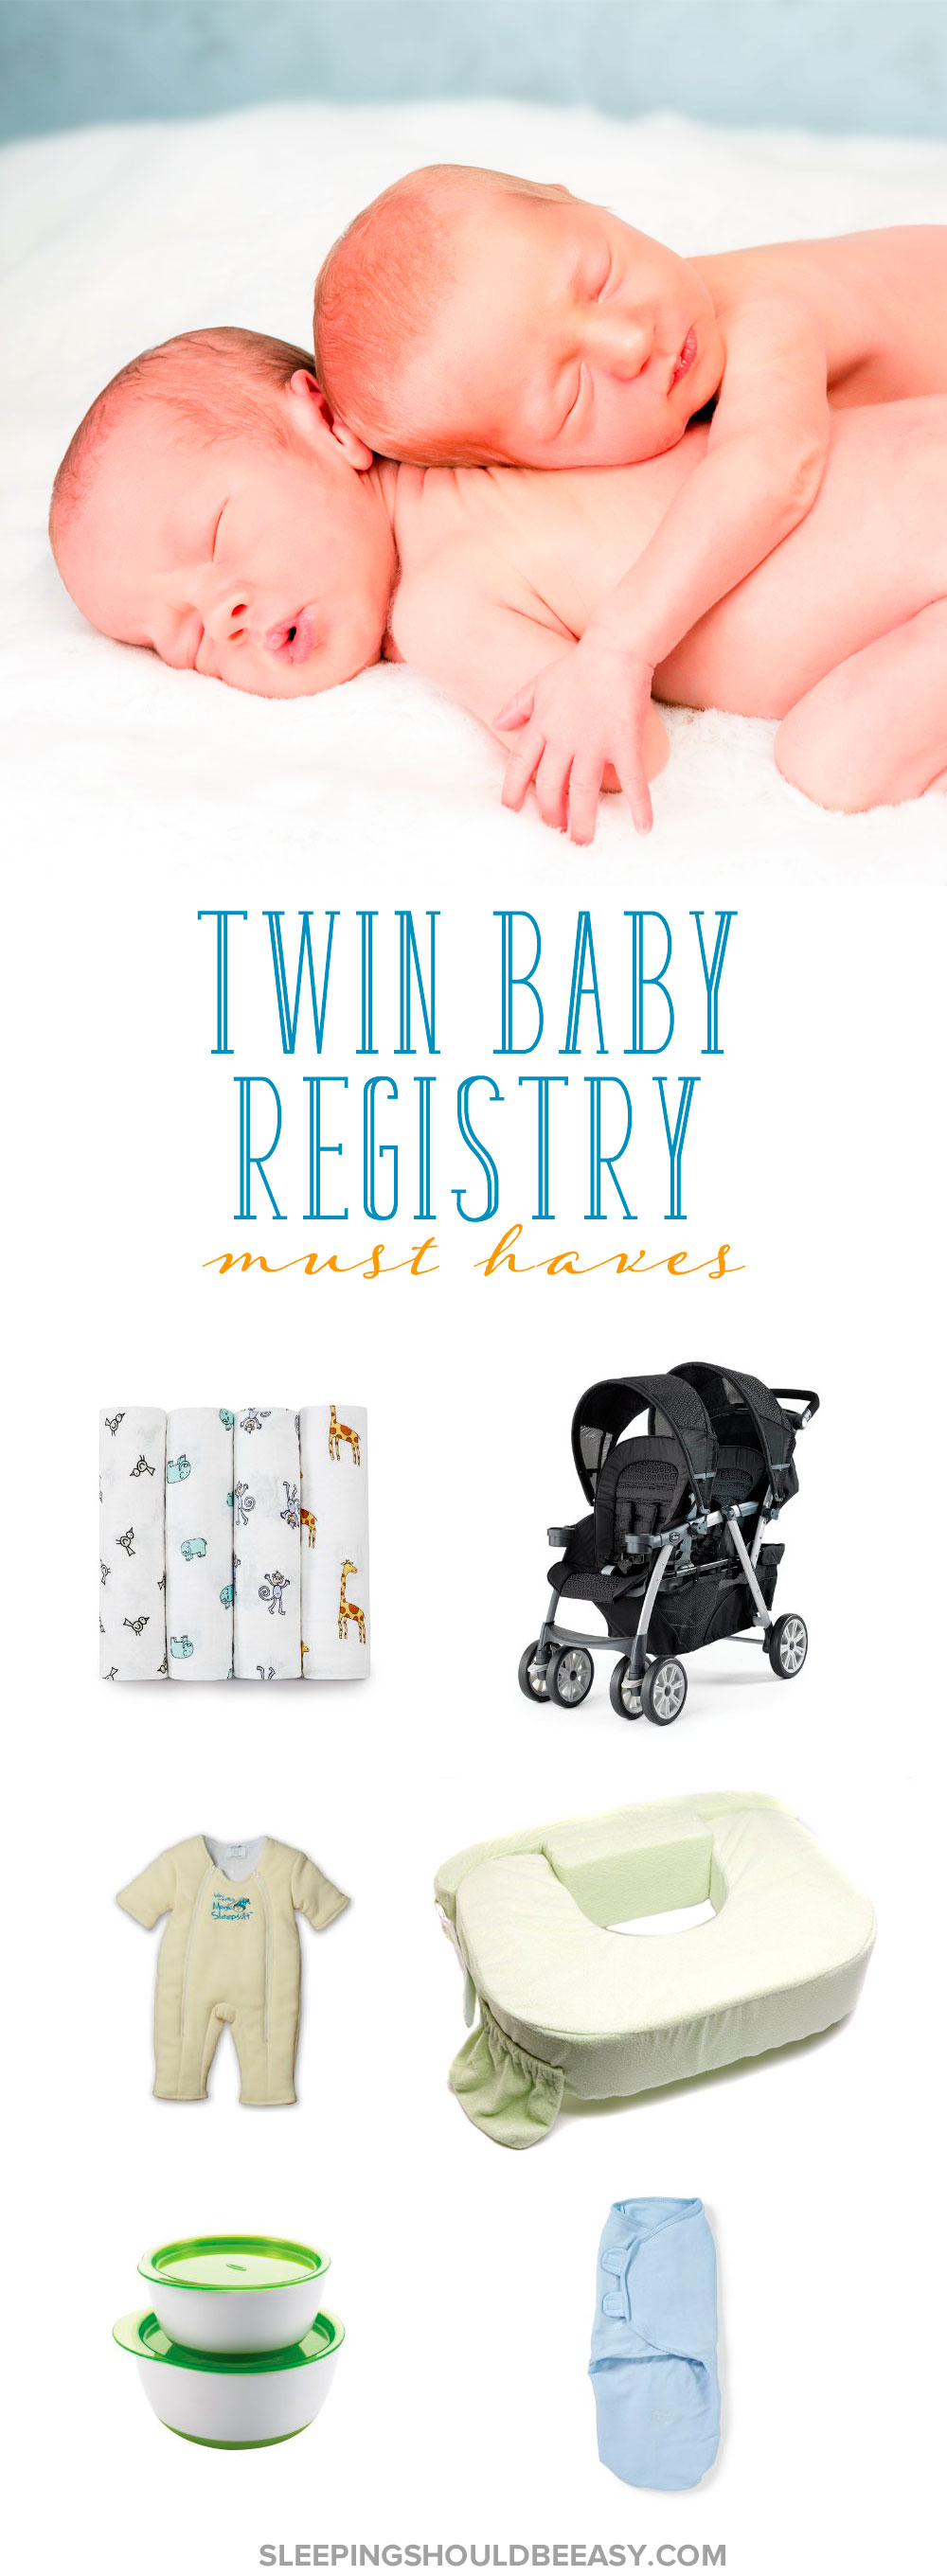 Are you expecting twins and want to know everything you need to prepare for the babies? Check out this comprehensive list of twin registry must-haves!